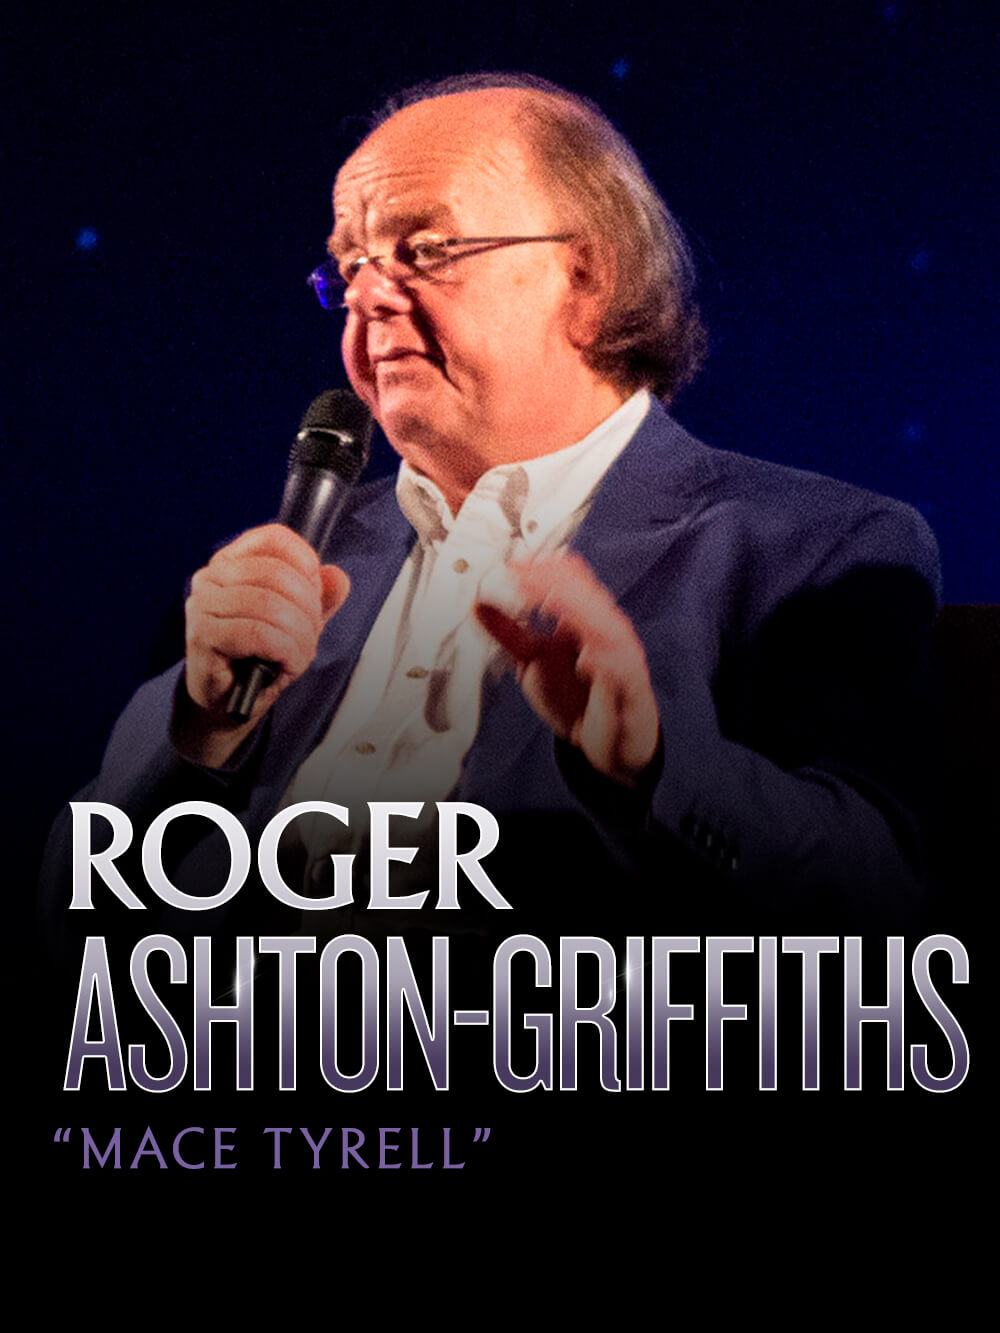 Guest-Card-Ashton-Griffiths.jpg